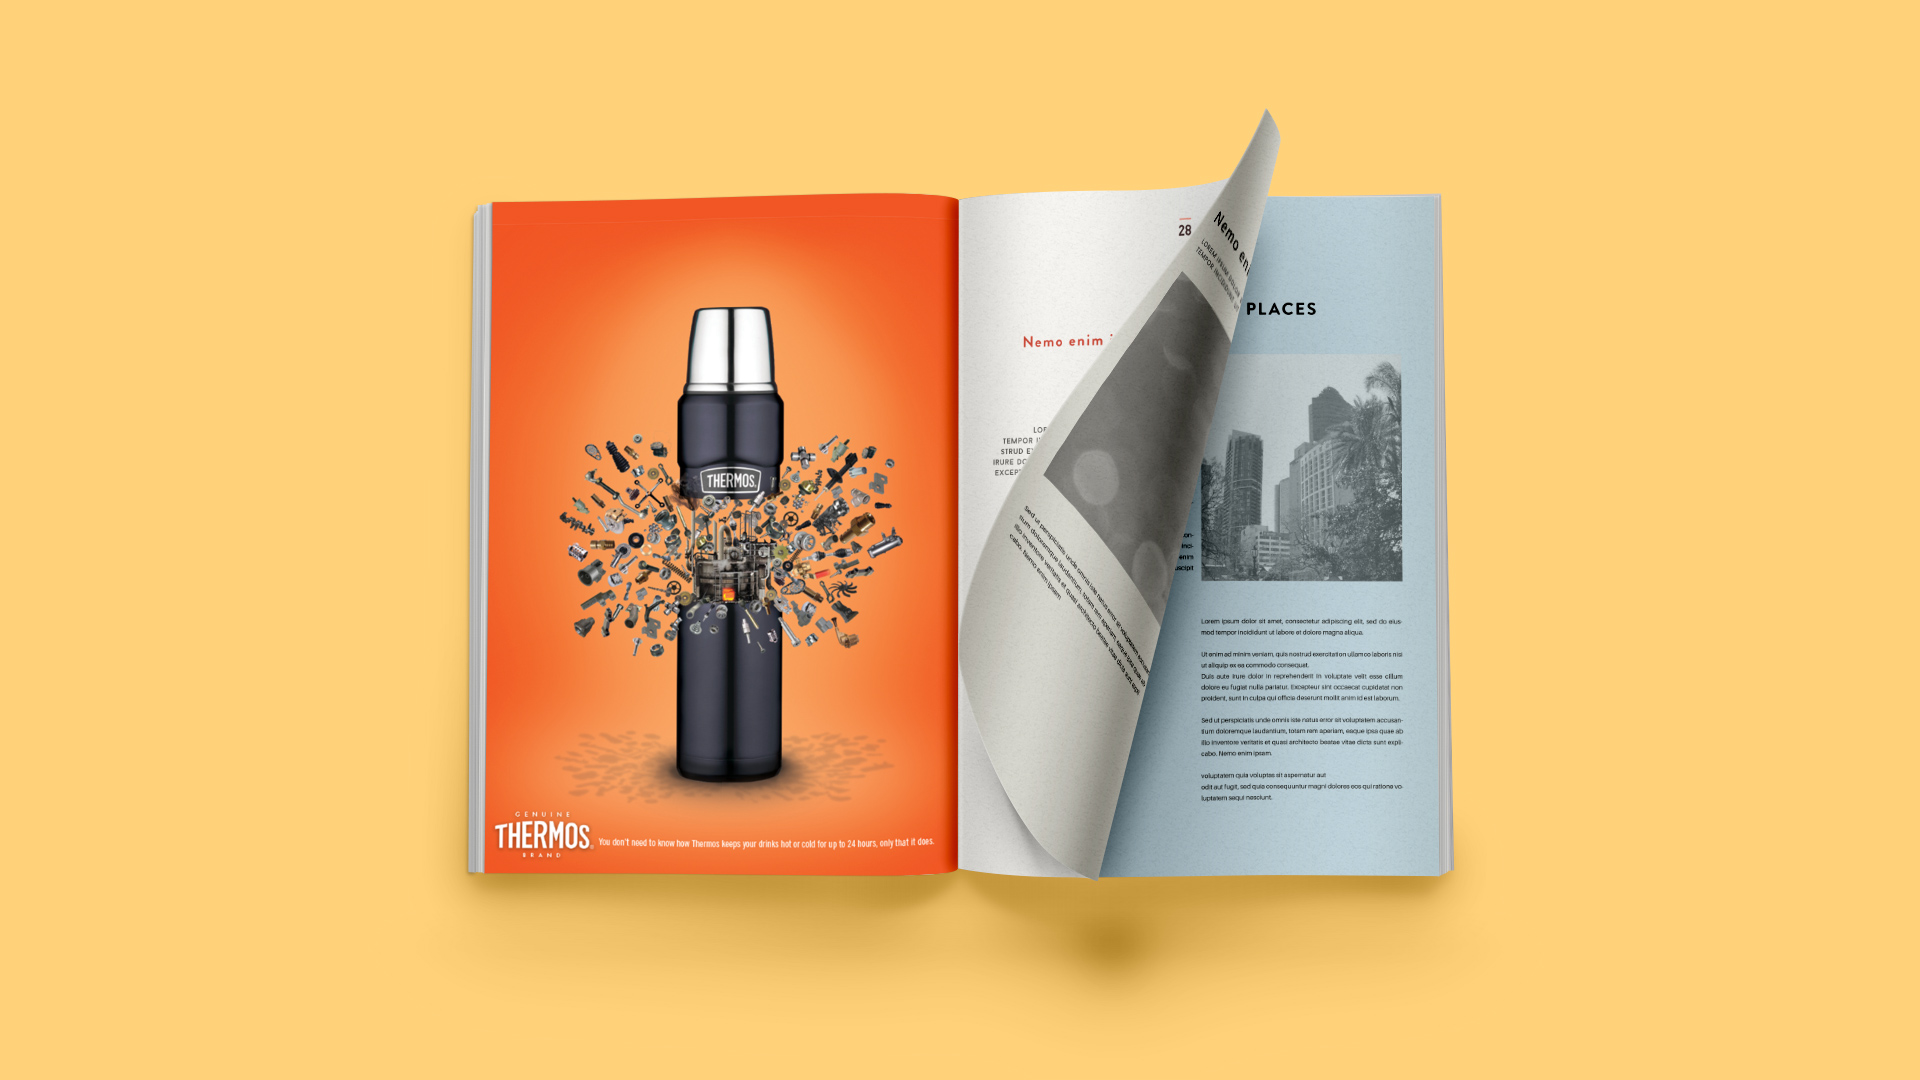 Thermos Brand Advertising Campaigns